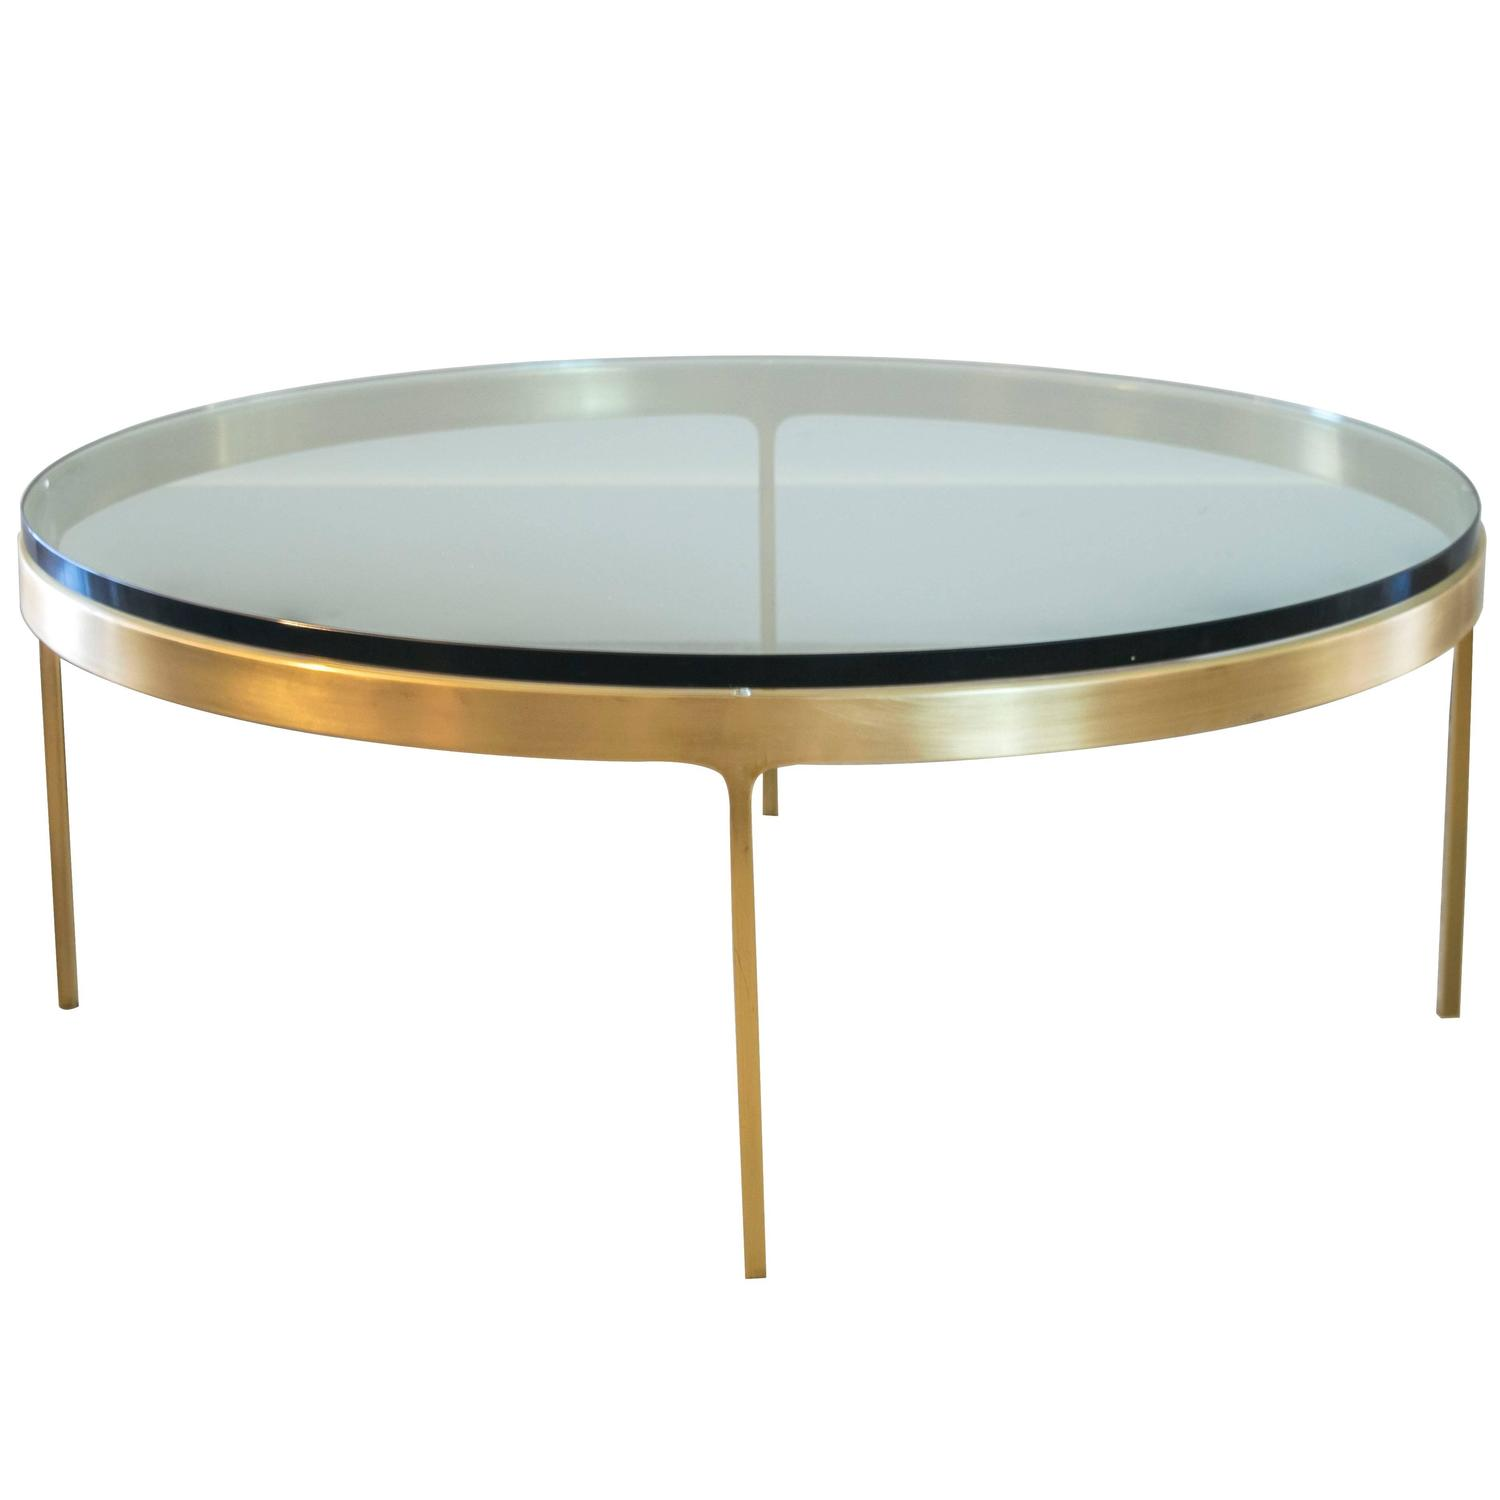 solid brass round coffee table by nicos zographos at 1stdibs. Black Bedroom Furniture Sets. Home Design Ideas